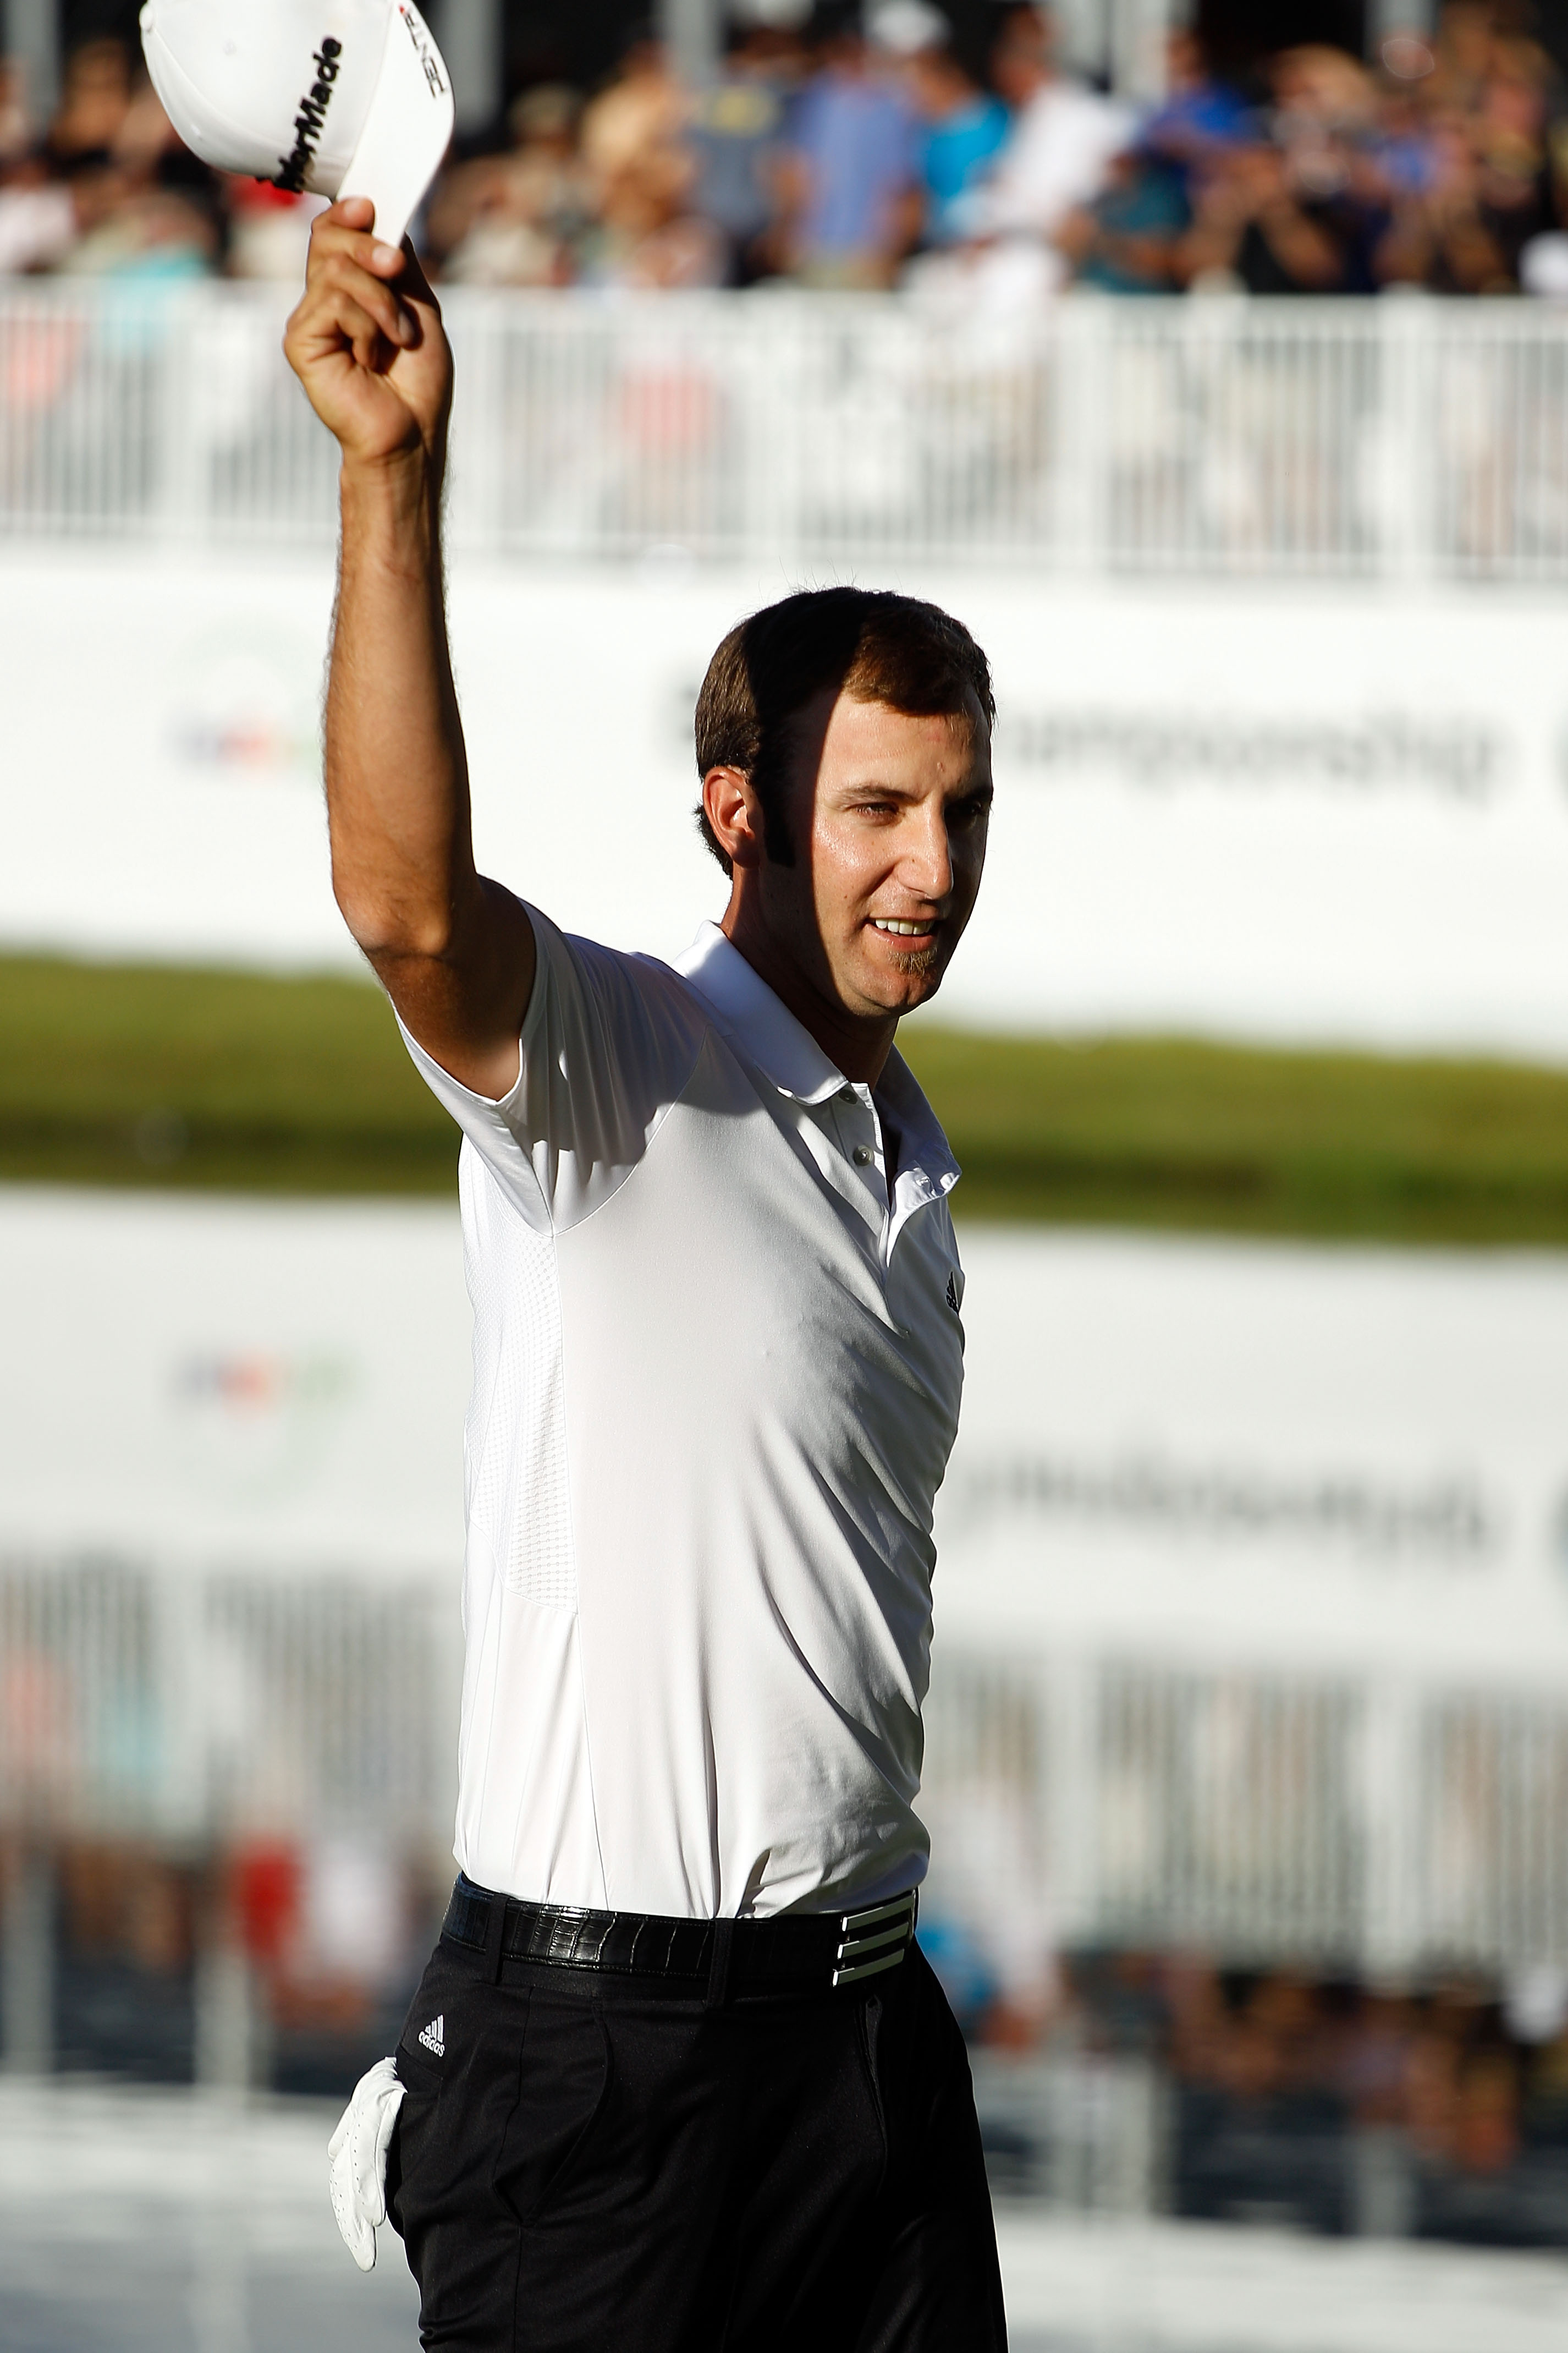 LEMONT, IL - SEPTEMBER 12:  Dustin Johnson reacts after making a putt on the 18th green to win the BMW Championship at Cog Hill Golf & Country Club on September 12, 2010 in Lemont, Illinois.  (Photo by Scott Halleran/Getty Images)